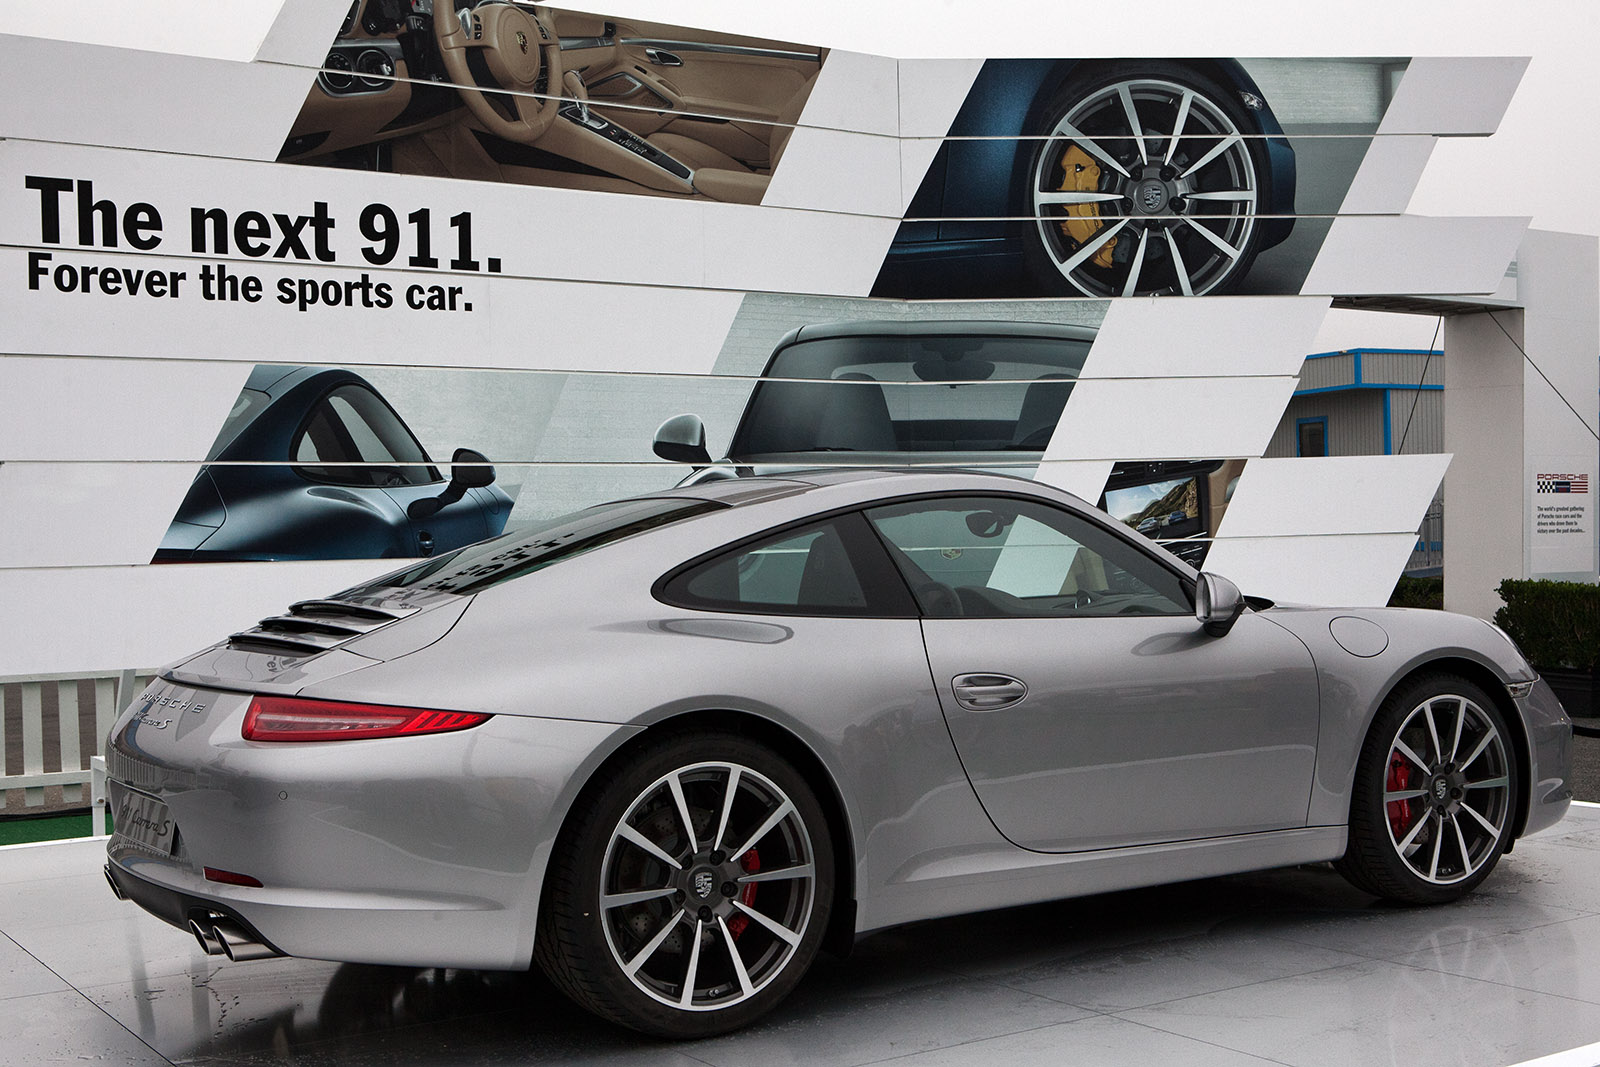 FileThe new 991 Carrera S Porsche Rennsport Reunion IVjpg